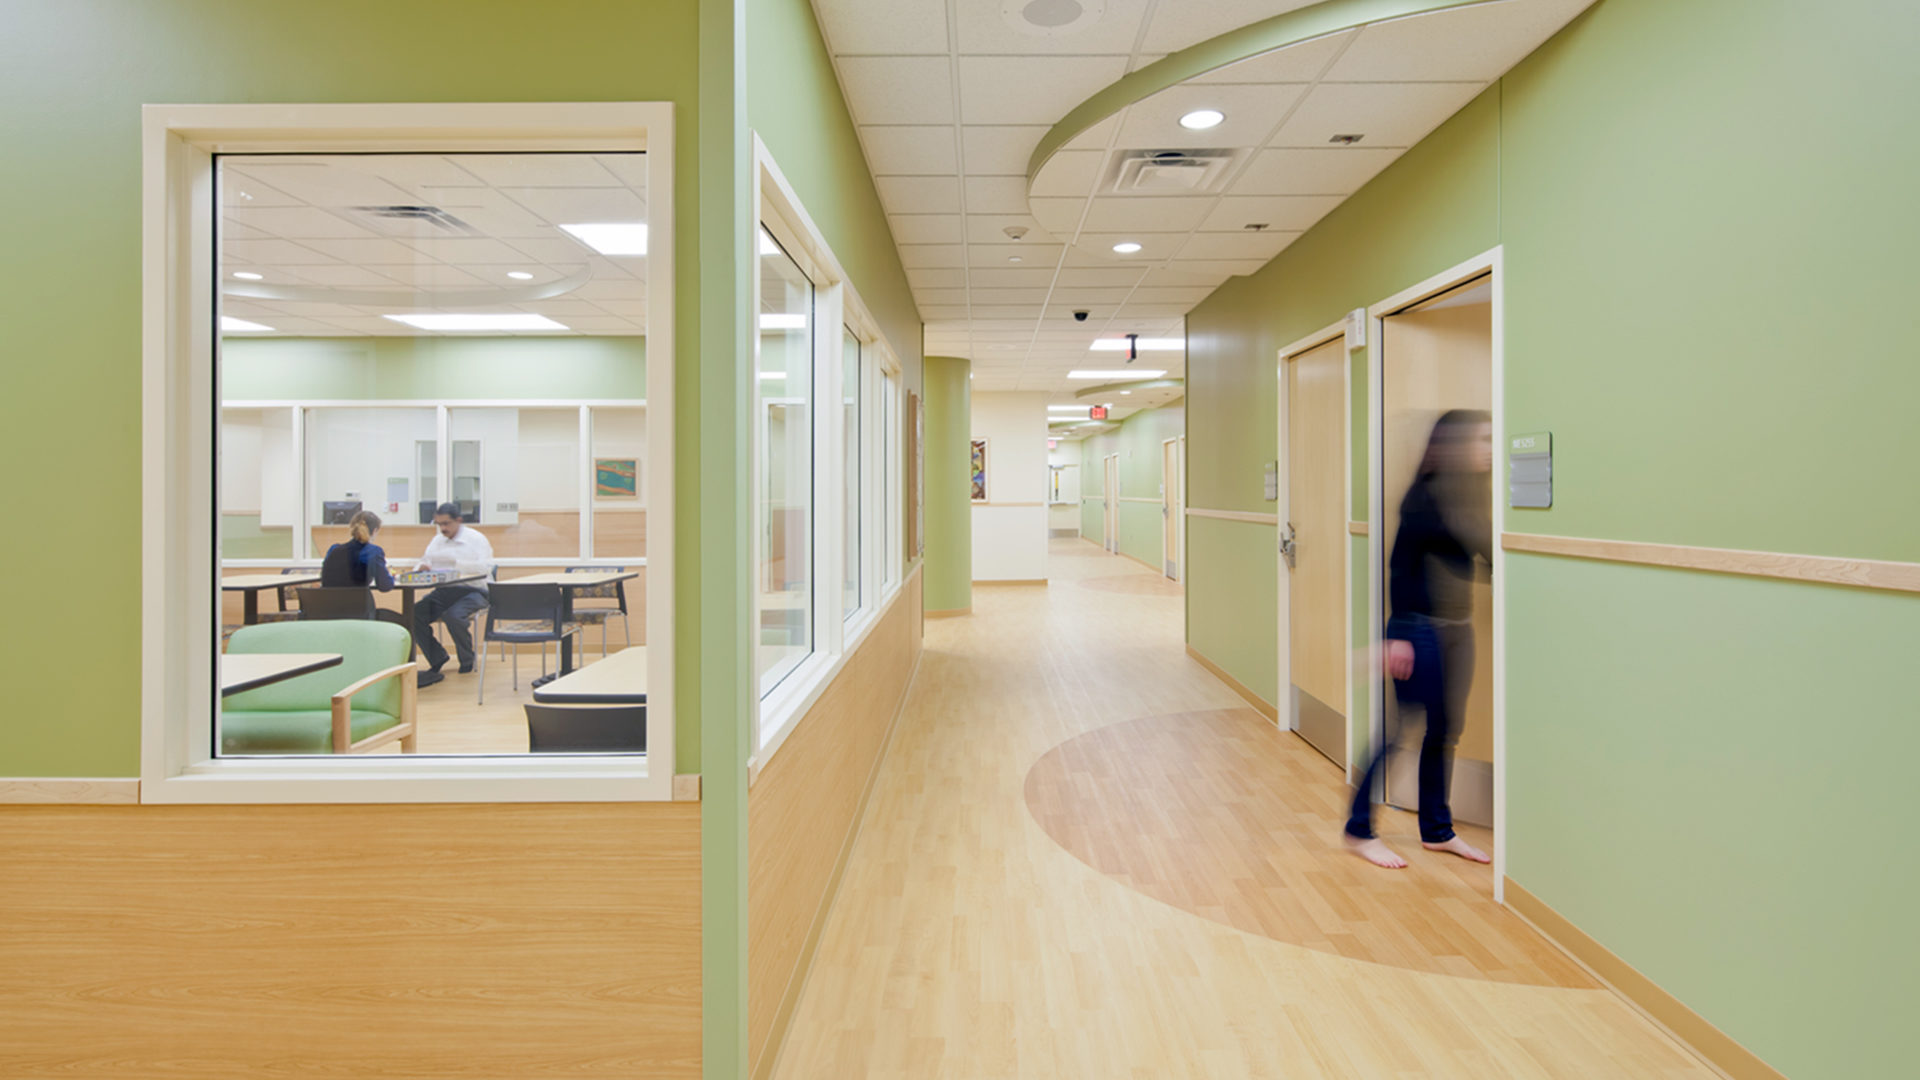 Regions Mental Health Center St Paul MN Healthcare Interior Cooridor Patients Rooms and Community Room